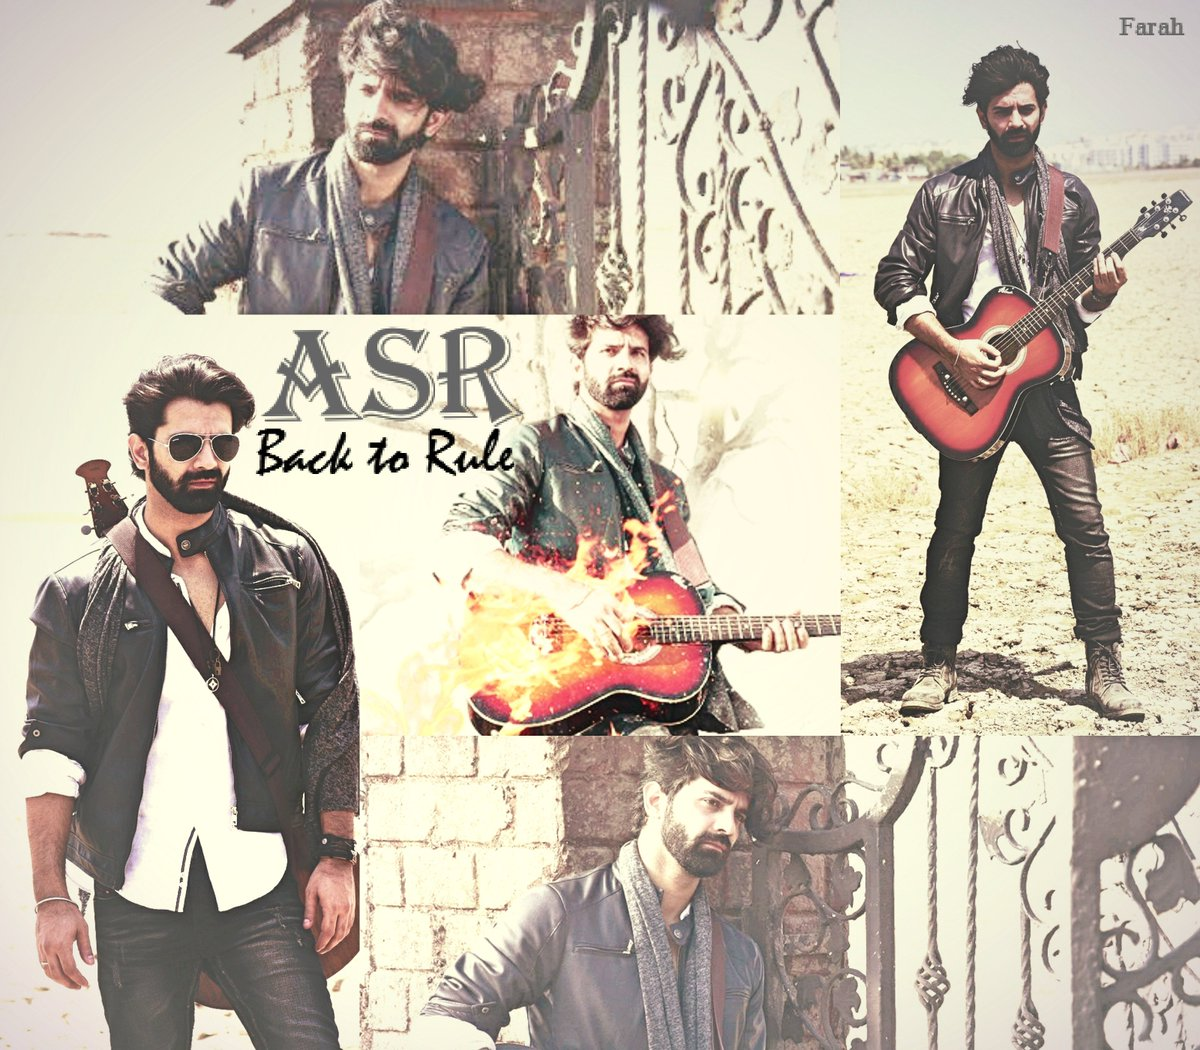 YES YES YES!  He is back to Rule,He is back to Slay&amp; #RabbaVe is just icing on cake  #ASR @StarPlus @BarunSobtiSays #IPKND3<br>http://pic.twitter.com/fHbOYUecBd